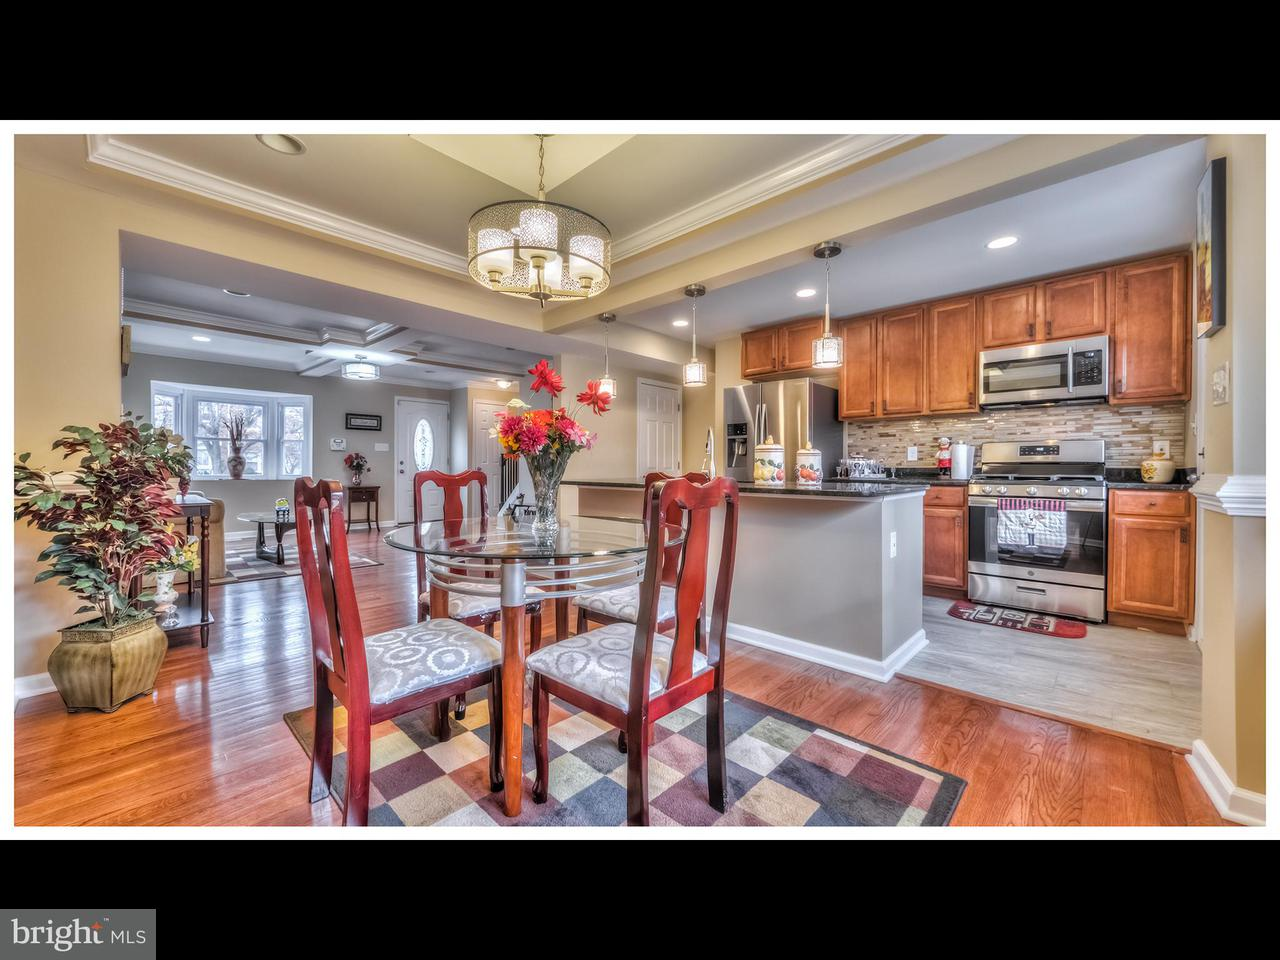 Single Family for Sale at 1707 Winford Rd Baltimore, Maryland 21239 United States